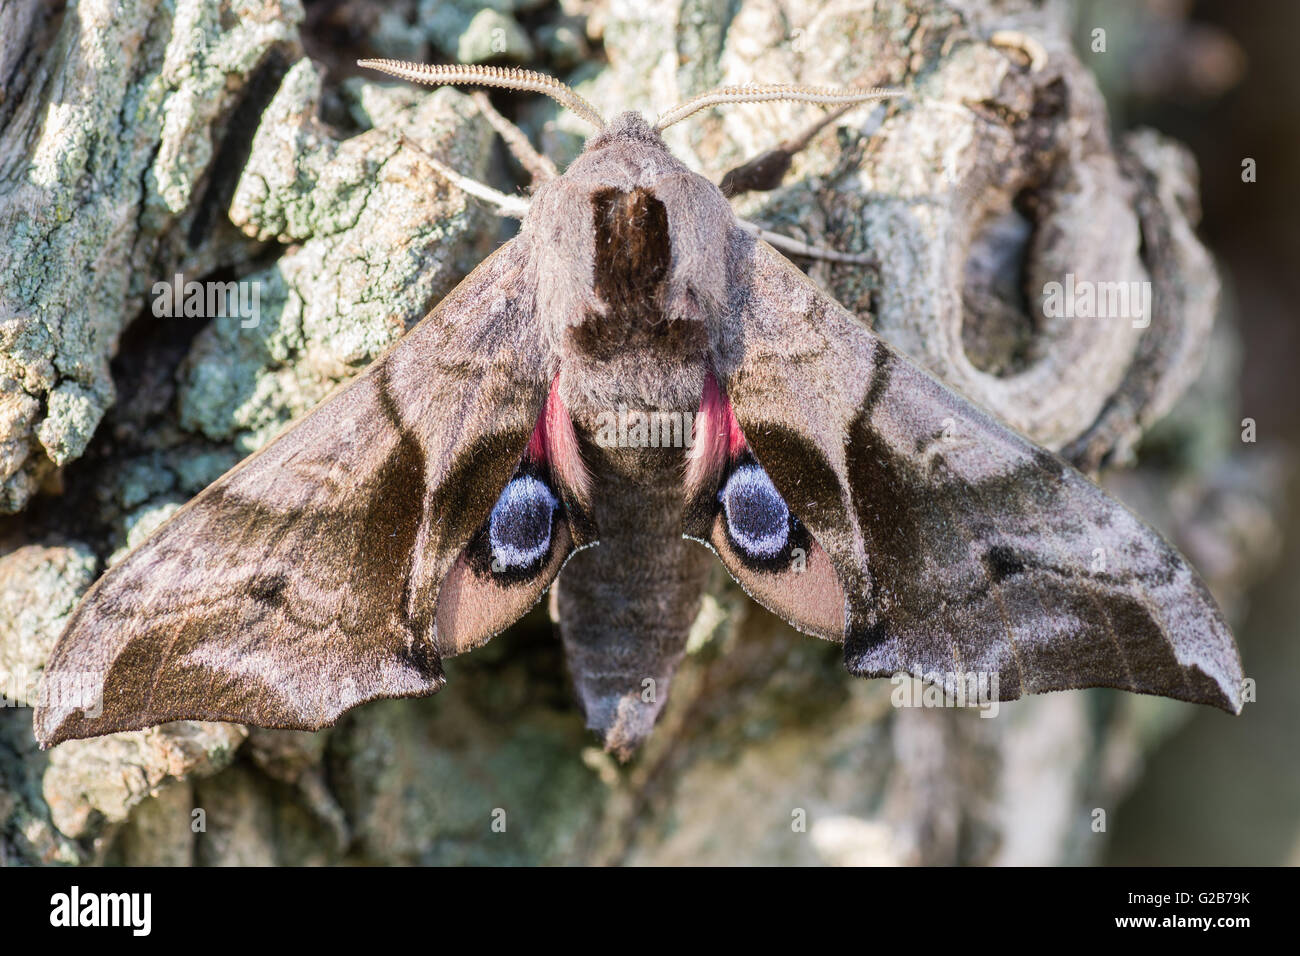 Eyed hawk-moth (Smerinthus ocellata) with hindwings. Hawk moth in family Sphingidae, showing eyes on wings to deter - Stock Image